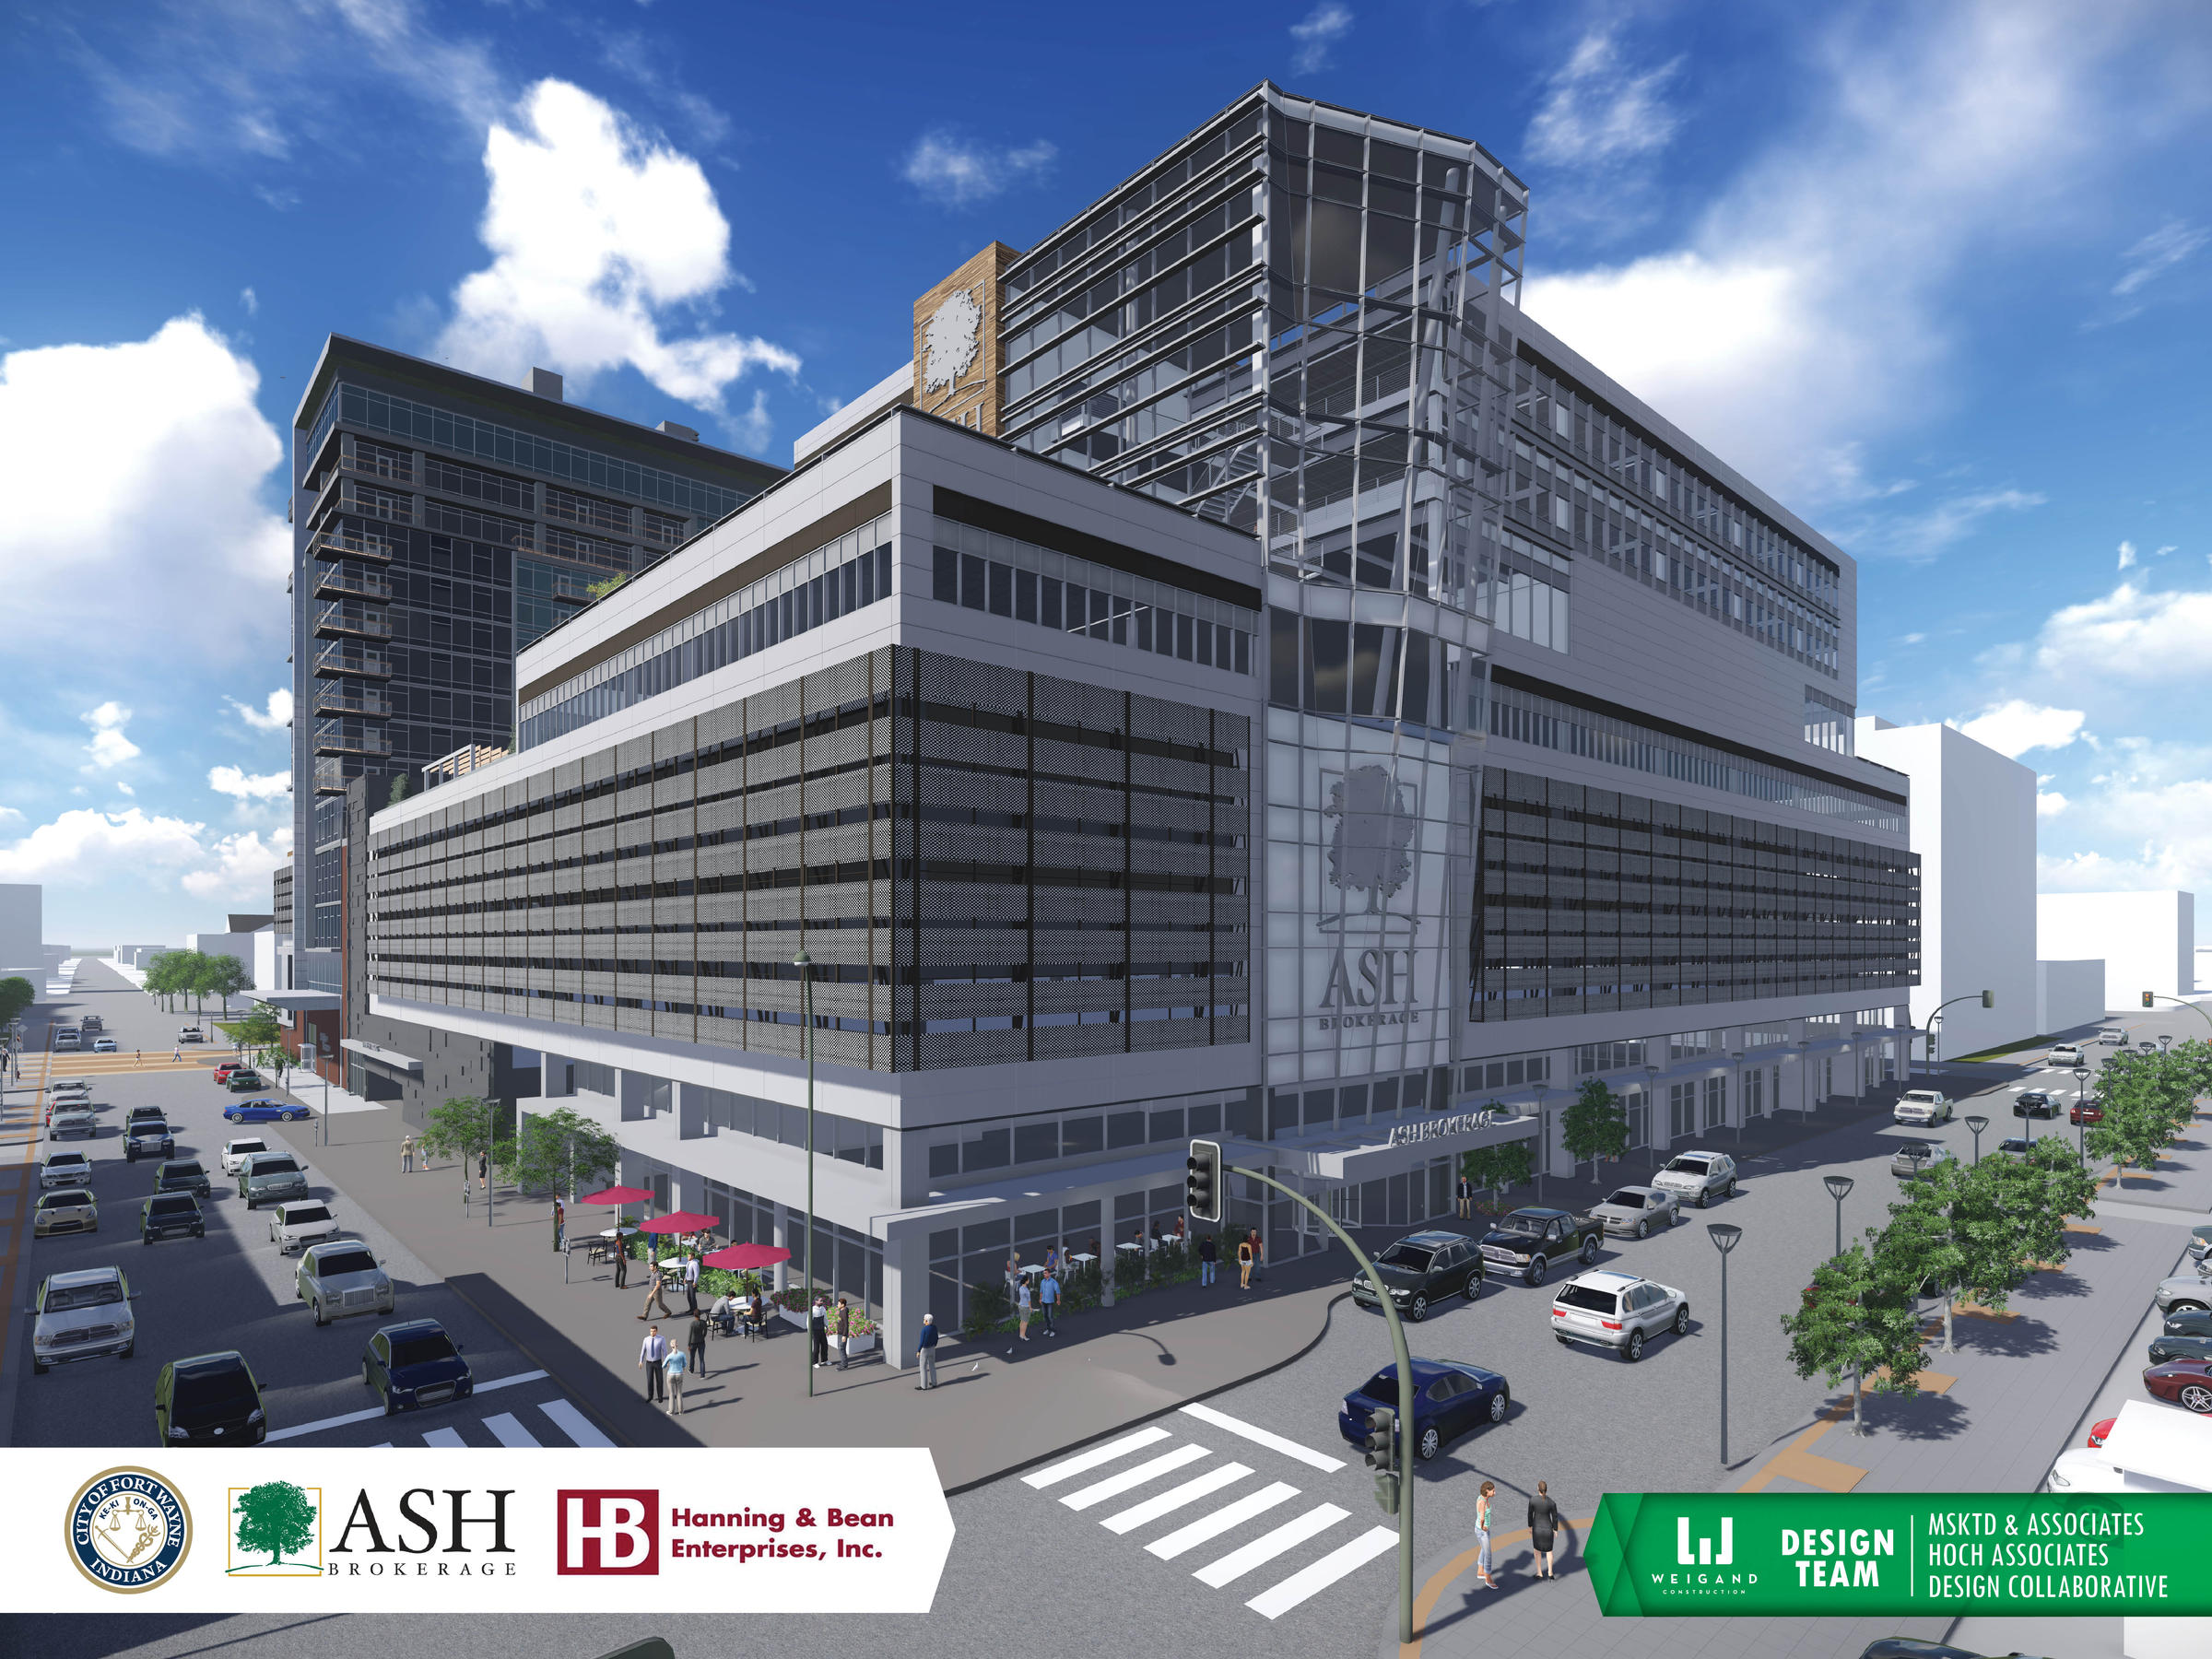 Hanning & Bean Pulls Out of Ash Brokerage Project